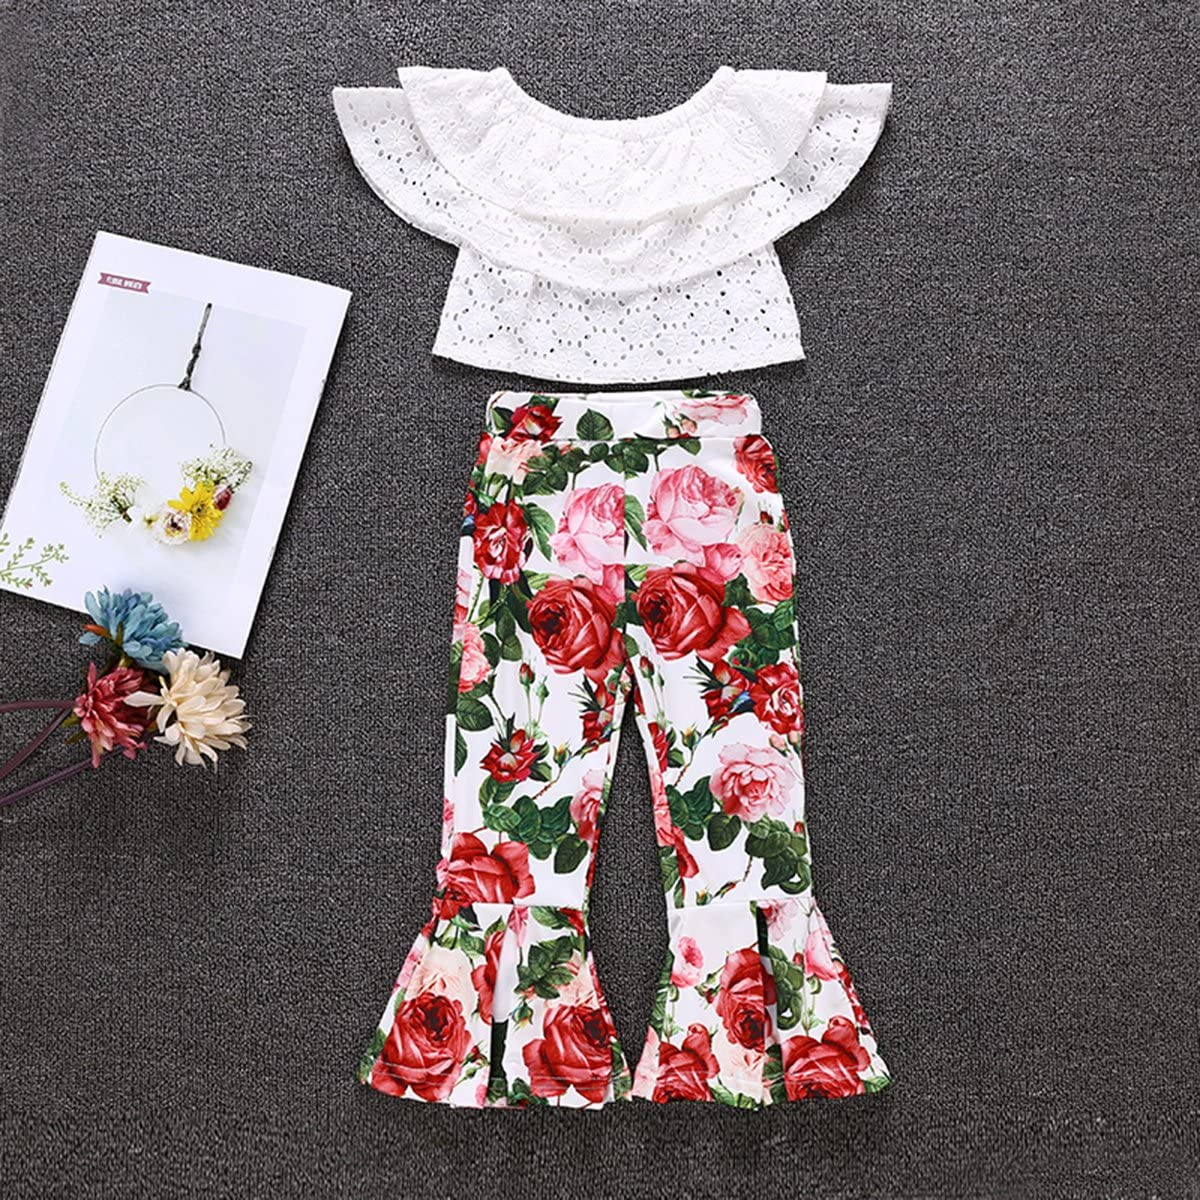 Floral Bell Bottom Pants Outfits Set puseky 2pcs Toddler Girls Hollow Out Ruffle Crop Shirt